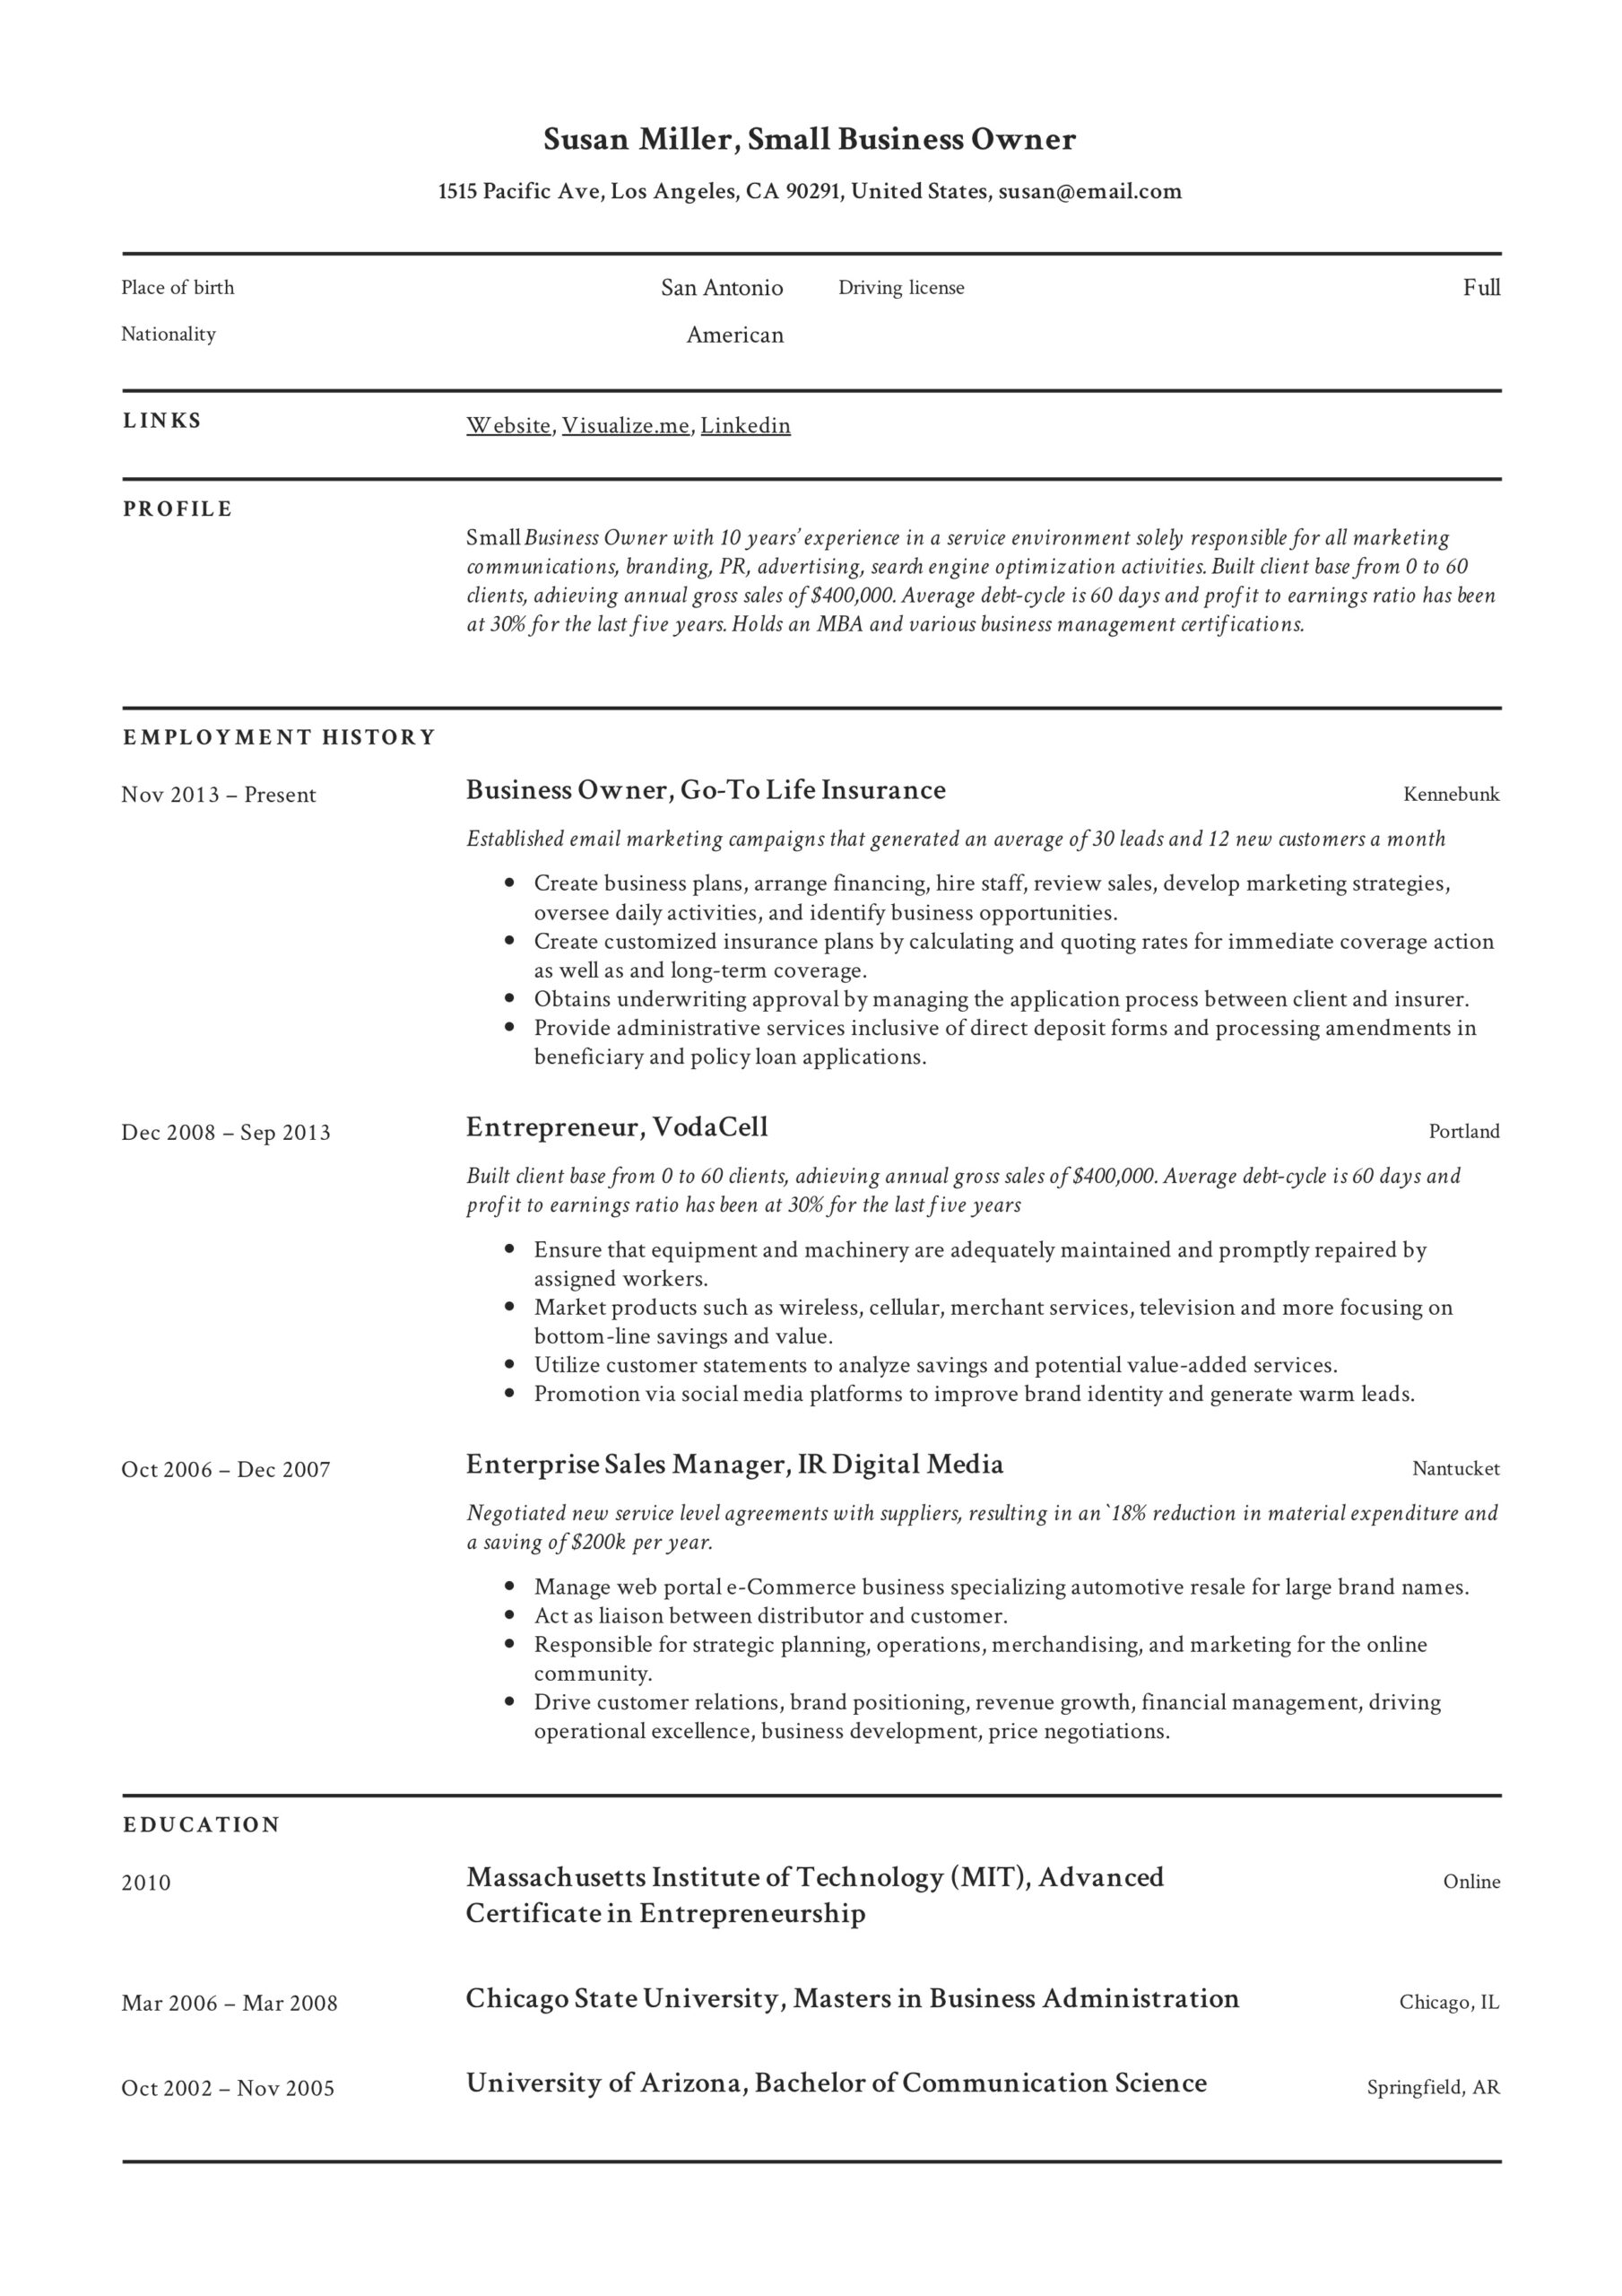 small business owner resume guide examples pdf entrepreneur samples example best Resume Entrepreneur Resume Samples